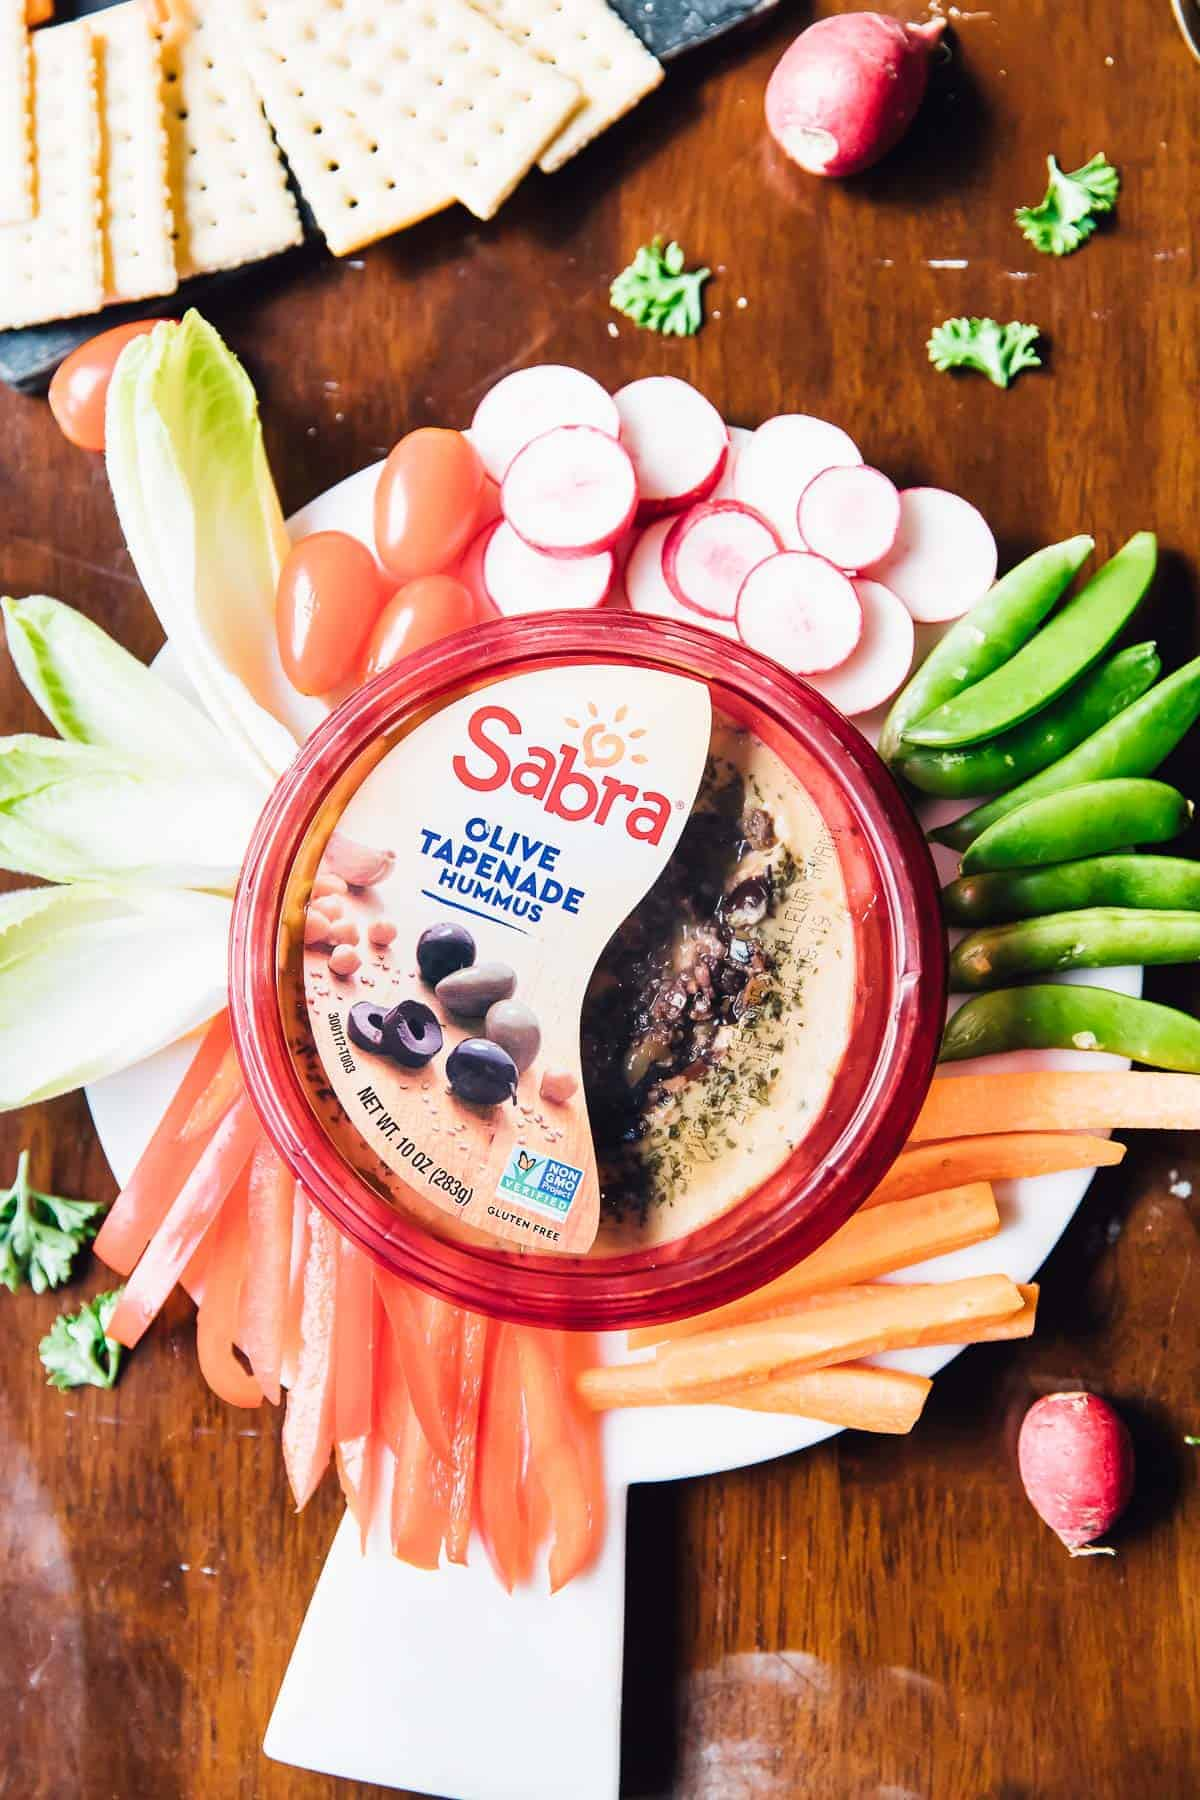 Here's an incredibly easy recipe forHow to Create an Easy Crudité Platter! I love them because they look absolutely stunning, with very little effort! You don't need to cook or mix anything, just cut, serve and enjoy! This platter features amazing hummus dips and crunchy, easy to prep veggies! via https://jessicainthekitchen.com